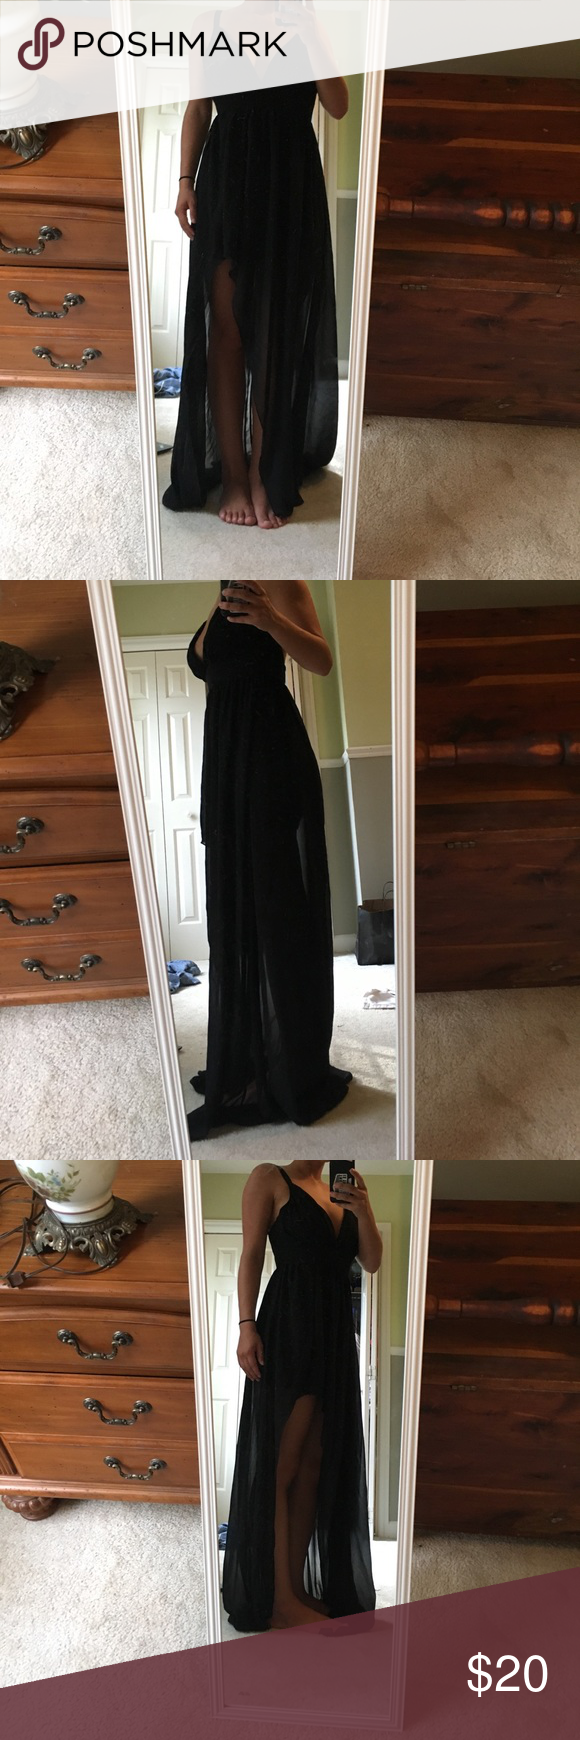 Black Formal Maxi Dress medium In great condition. Worn once. Perfect for any formal occasion, or the beach. Dresses Prom